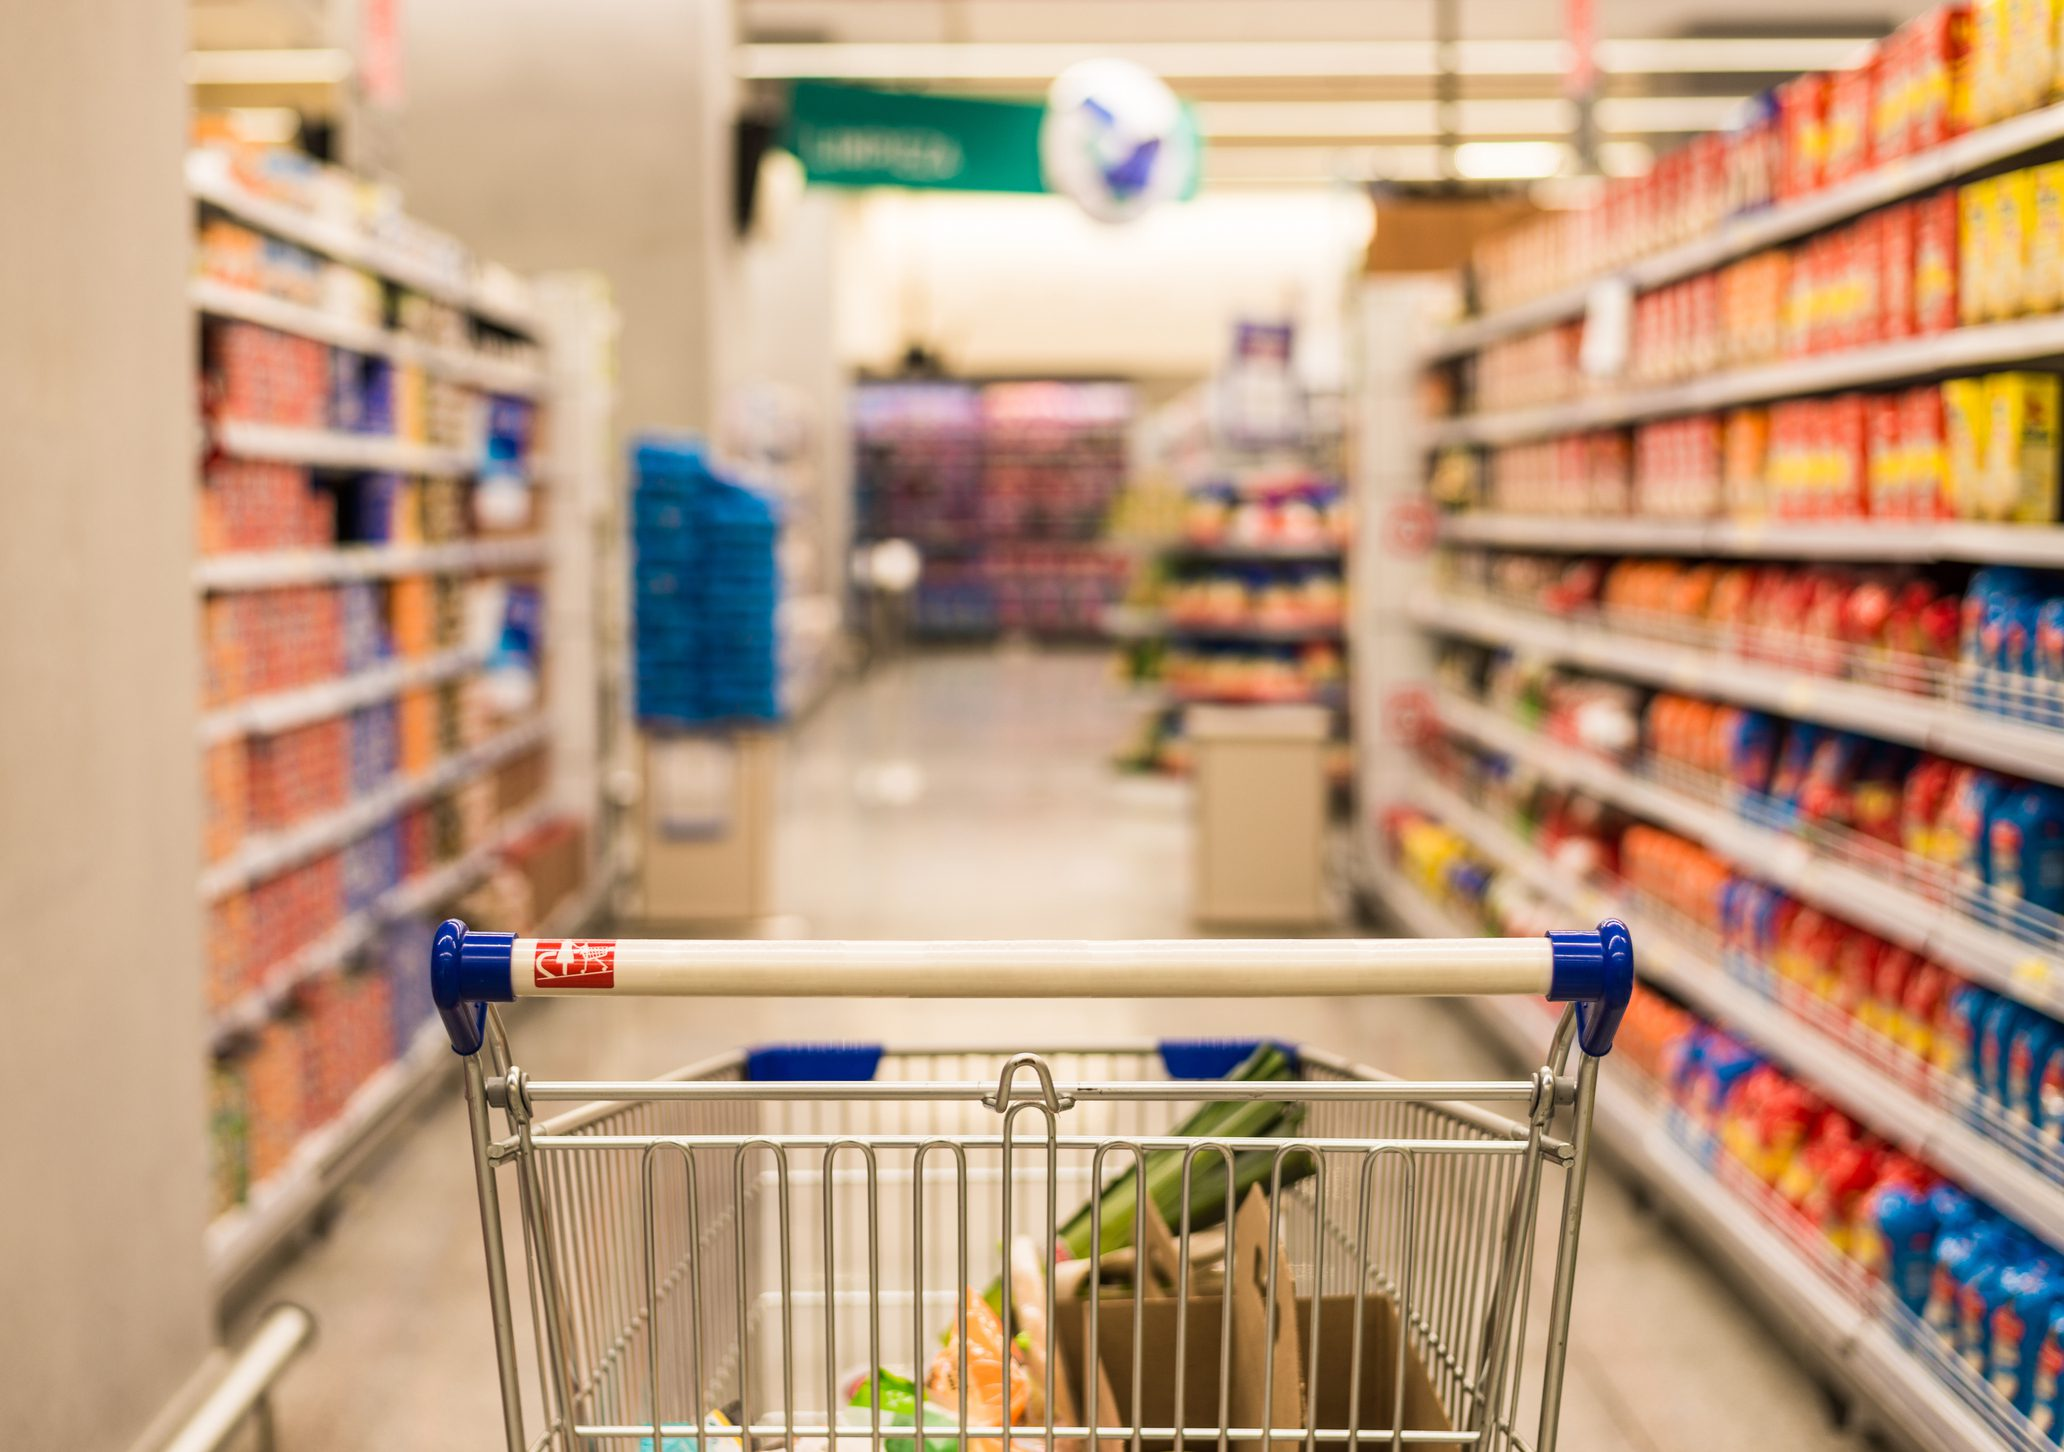 Shopping cart in a supermarket. Shopping, cooking, and price concept.